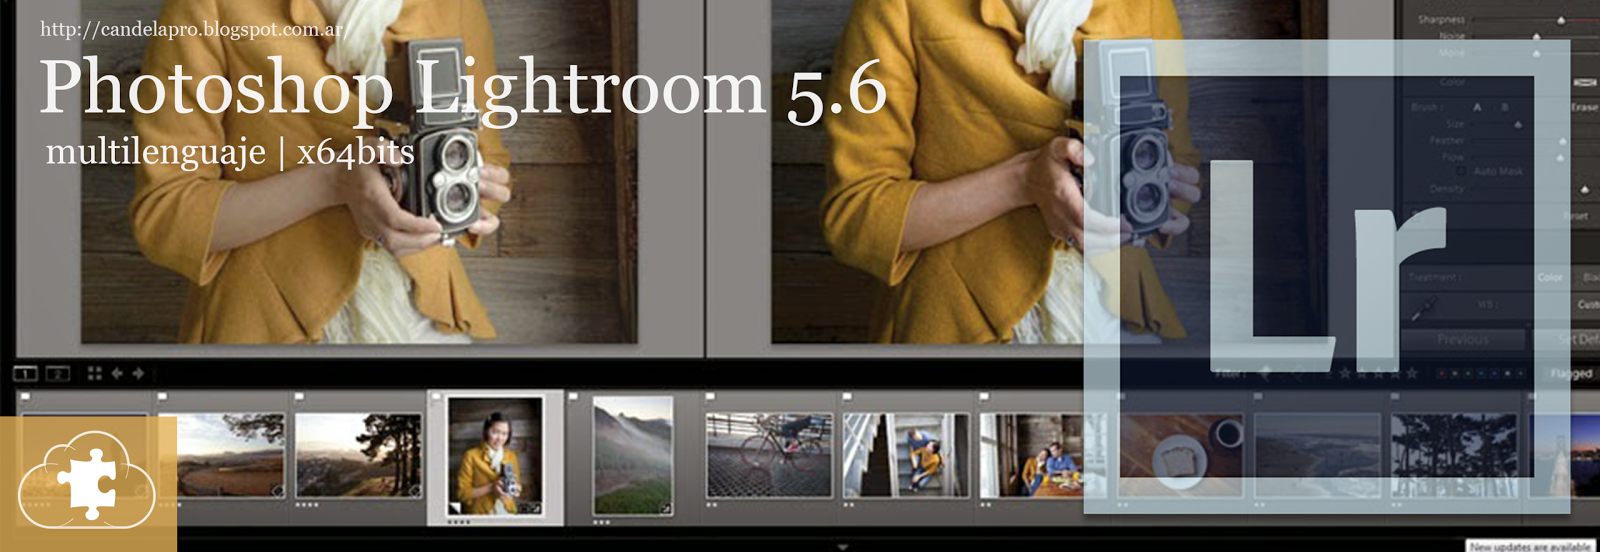 Adobe Lightroom 5.6 | x64 bits | multilenguaje